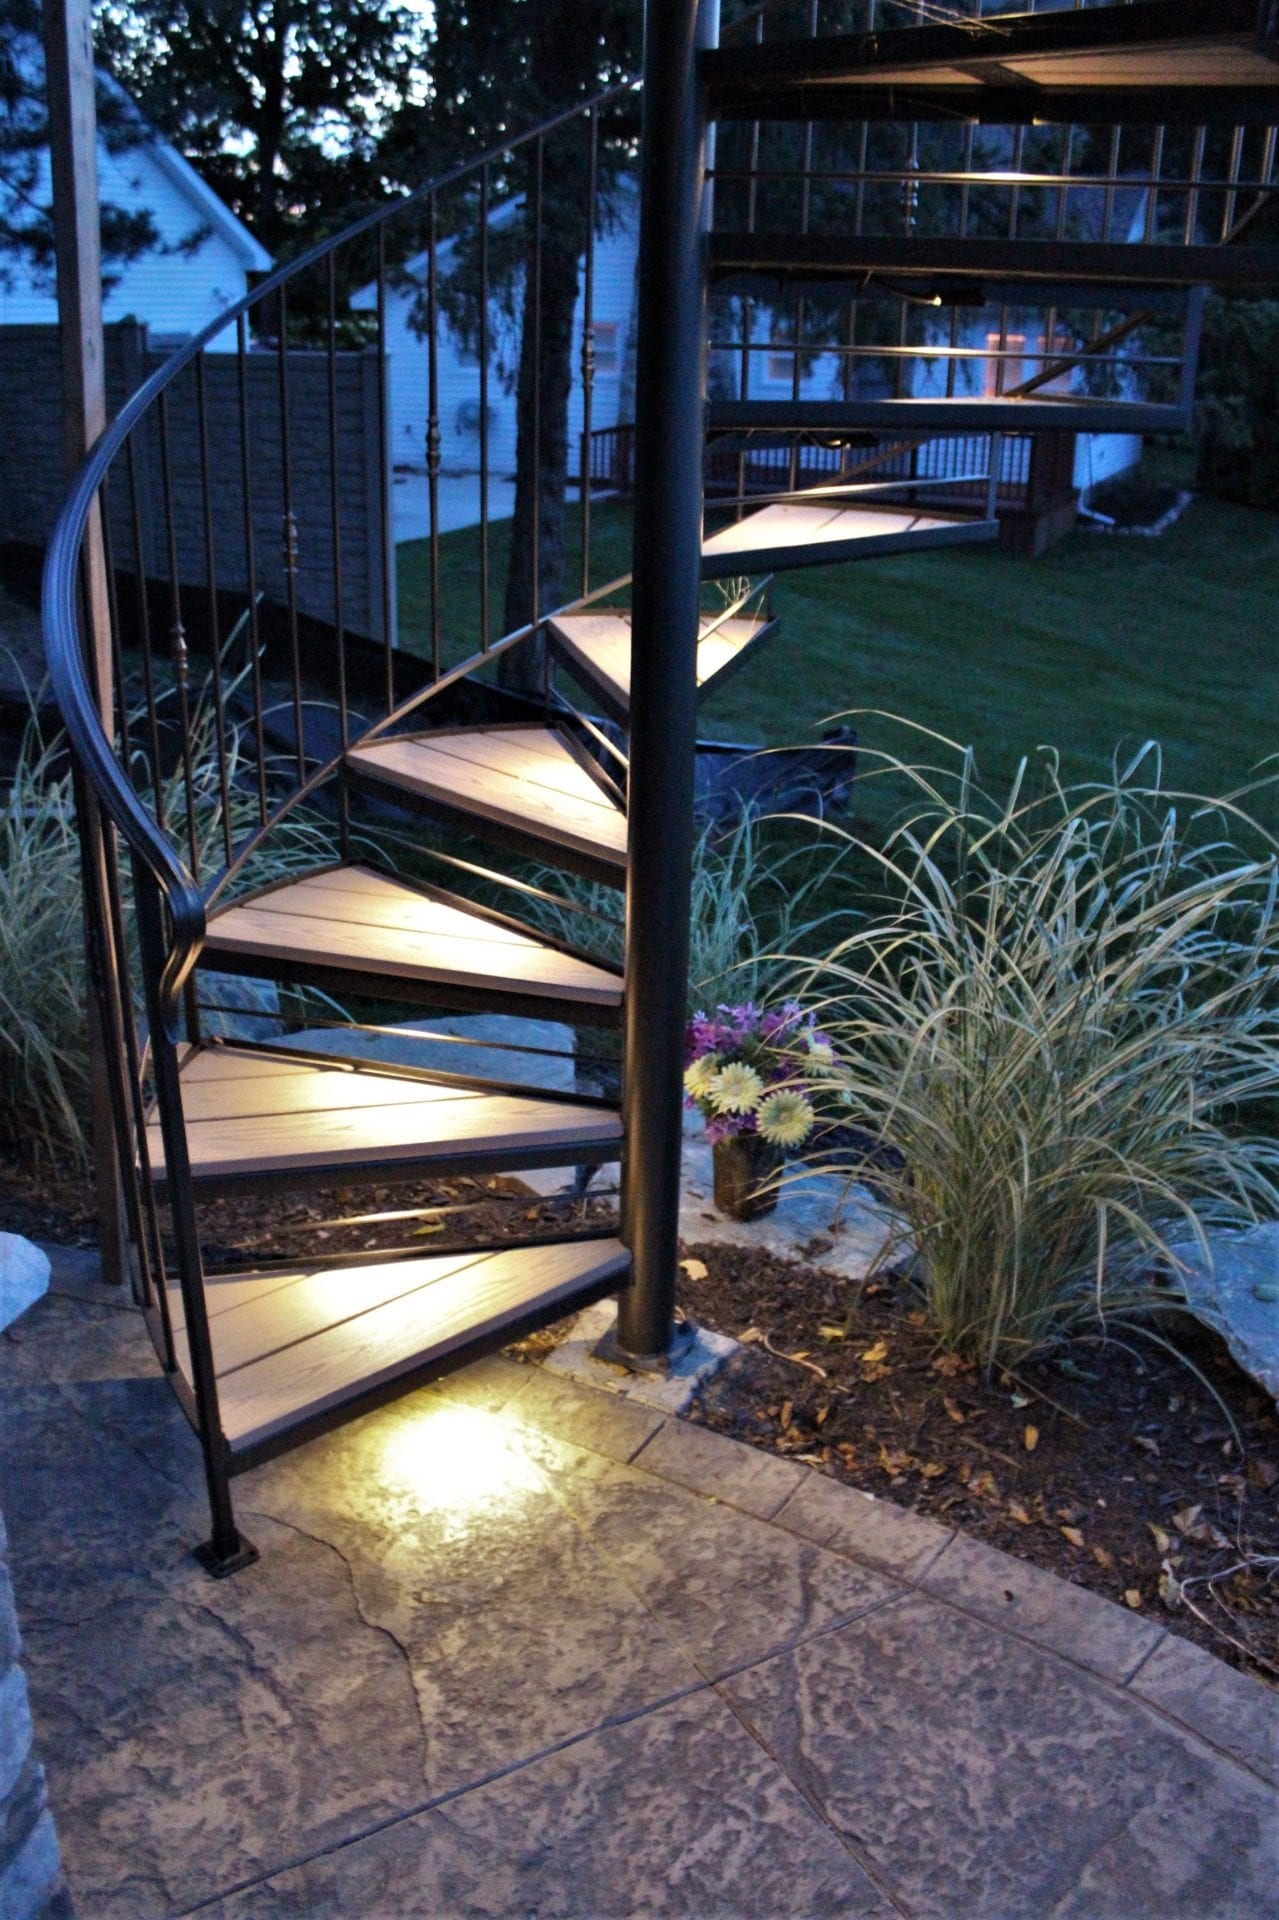 Spiral Stairs For Deck And Patio Great Lakes Metal Fabrication   Outdoor Spiral Staircase Installation   Simple   3 Floor   Outdoor   Backyard   Roof Deck